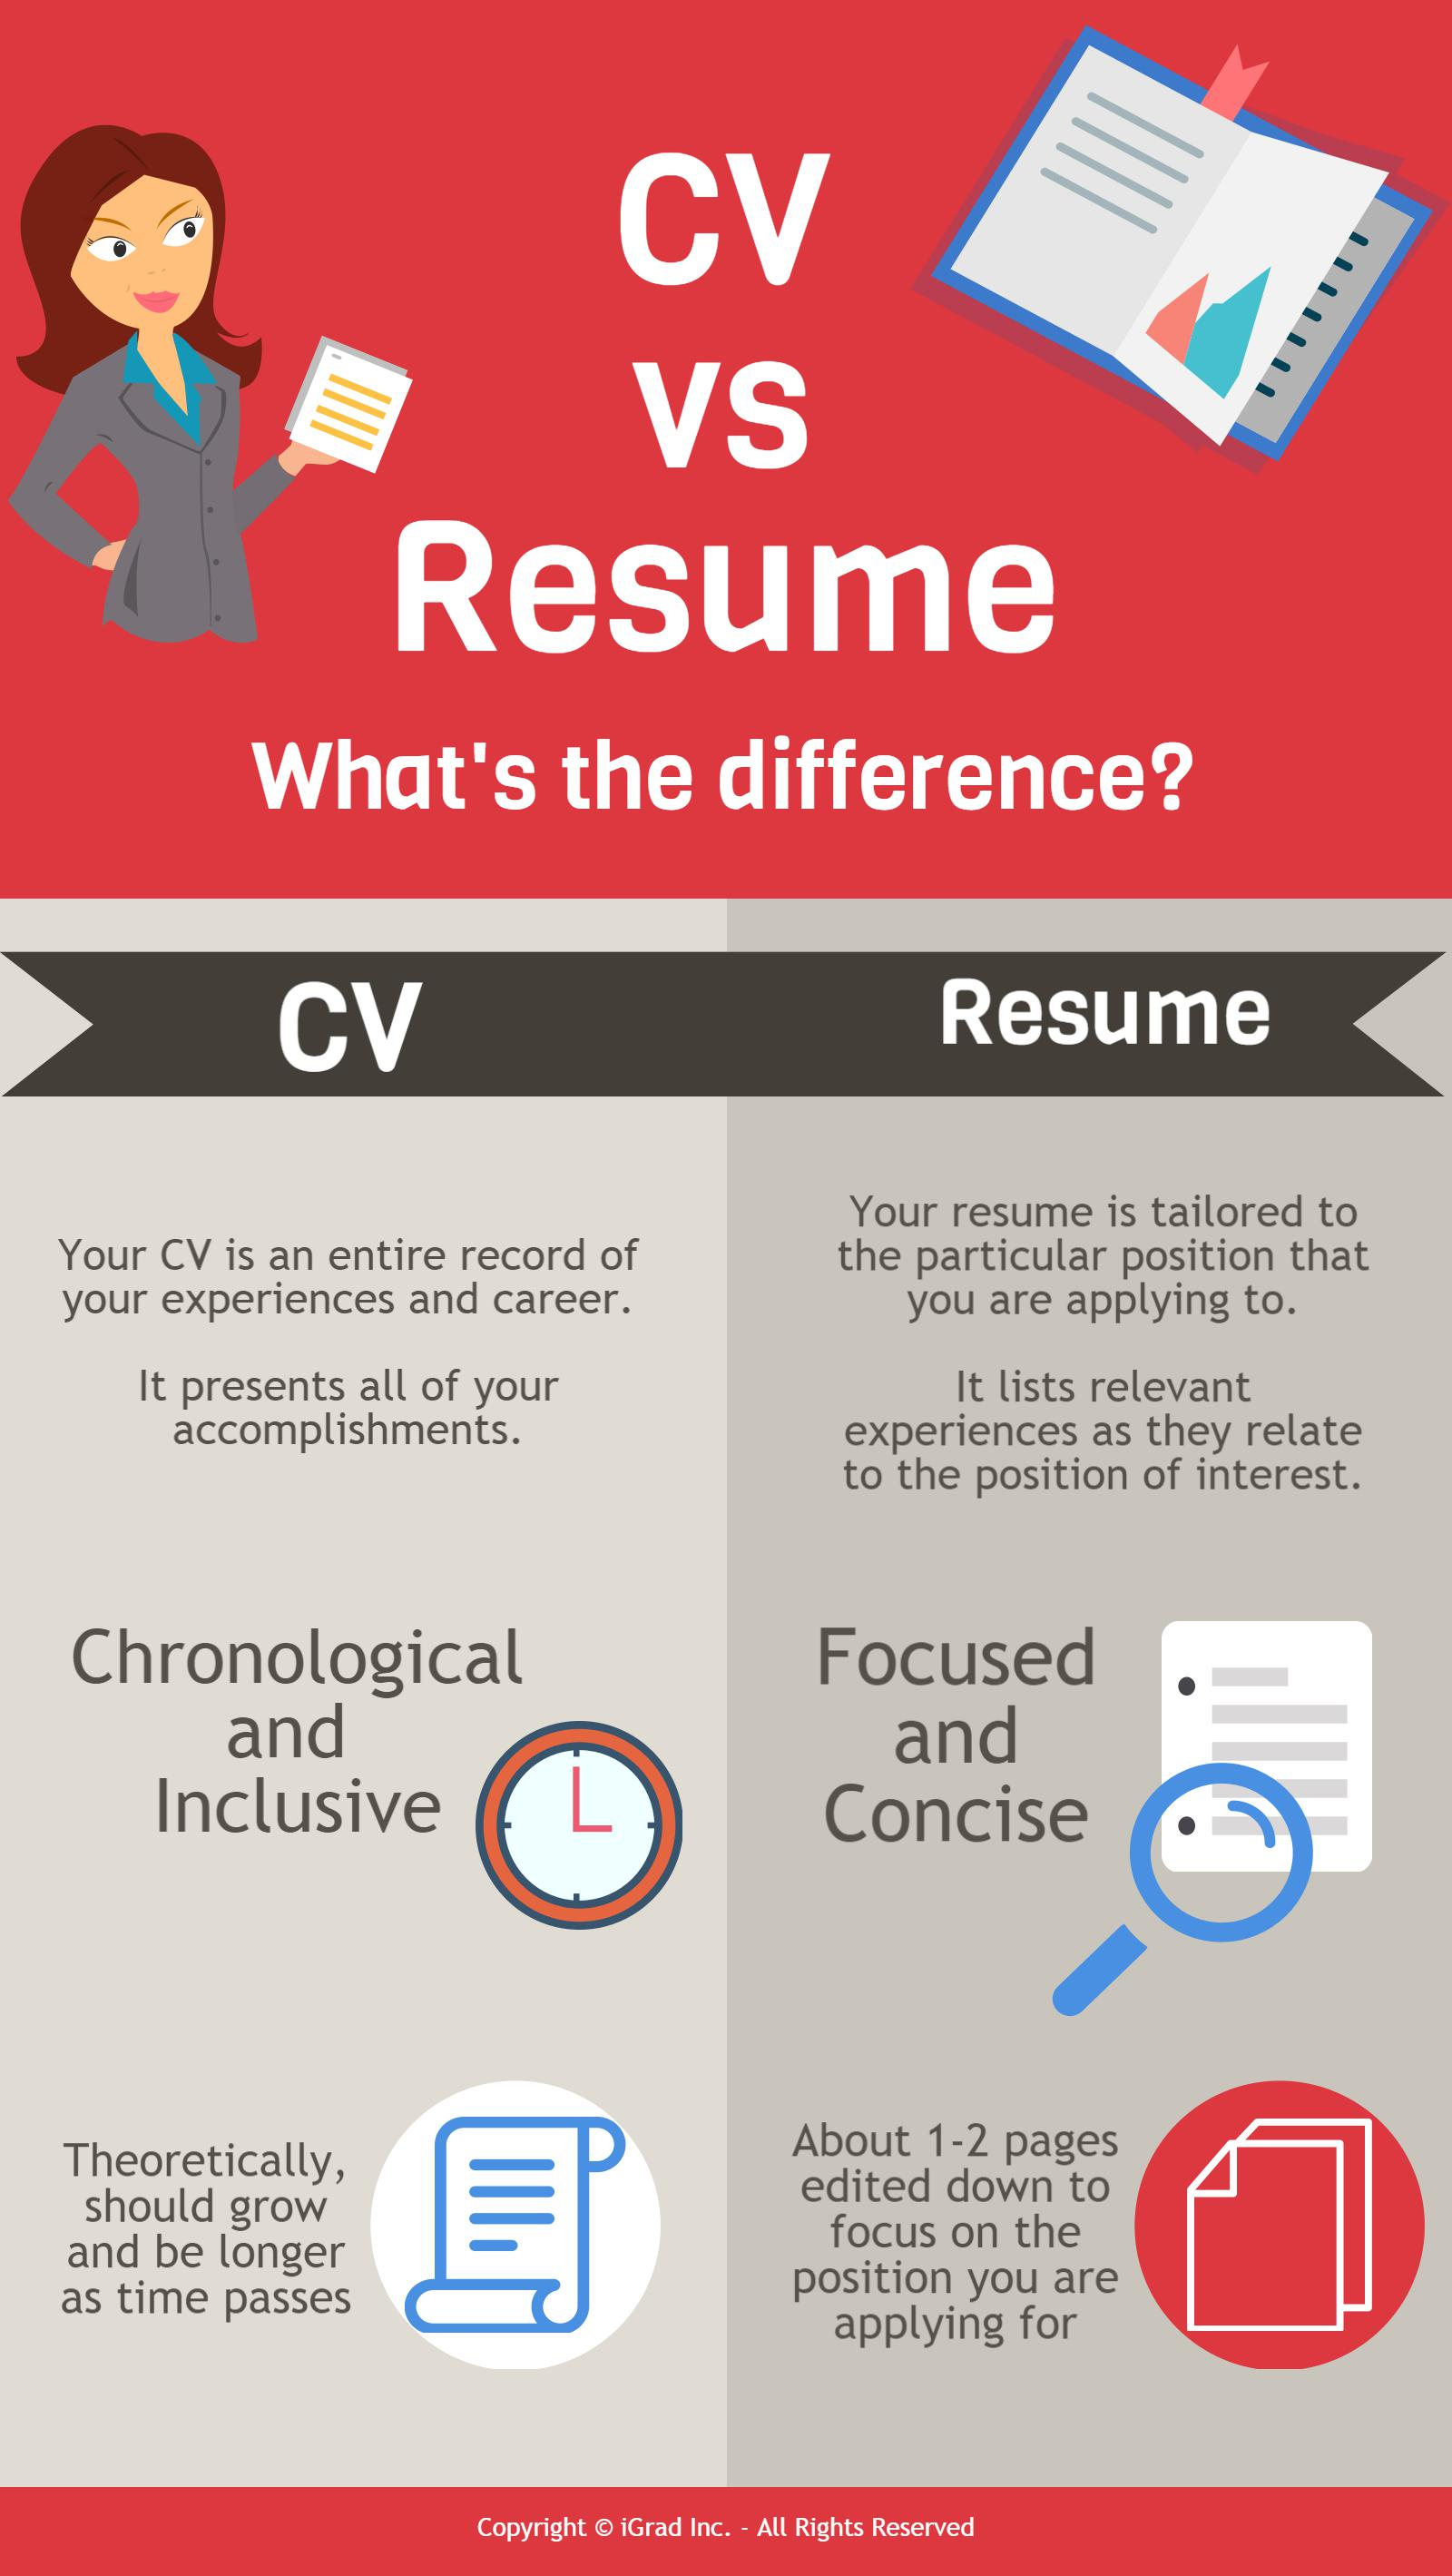 CV vs. Resume - What's the difference?